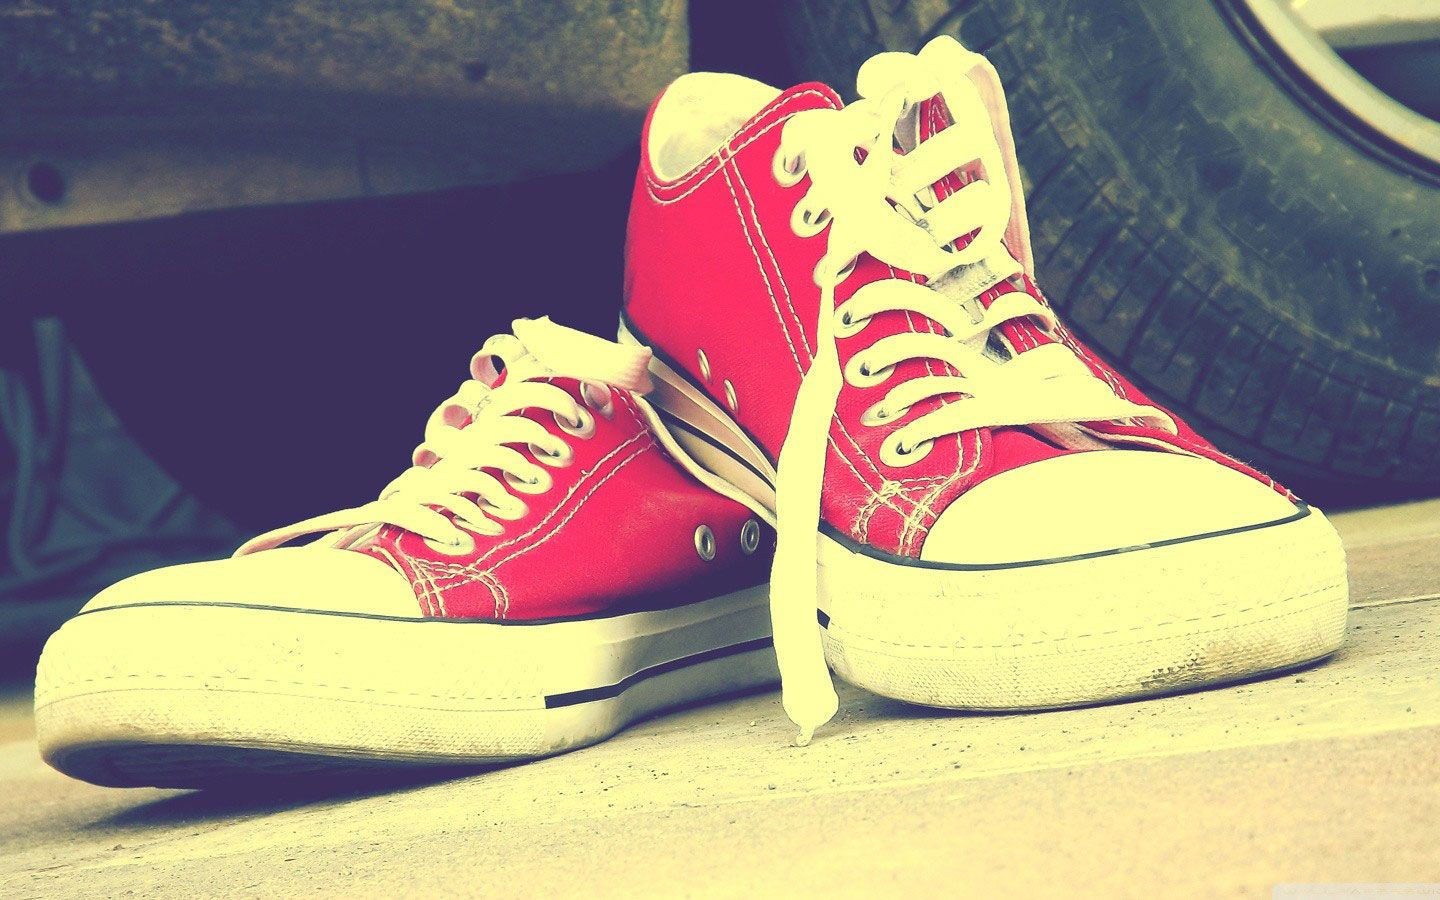 Red converse shoes, Shoes wallpaper